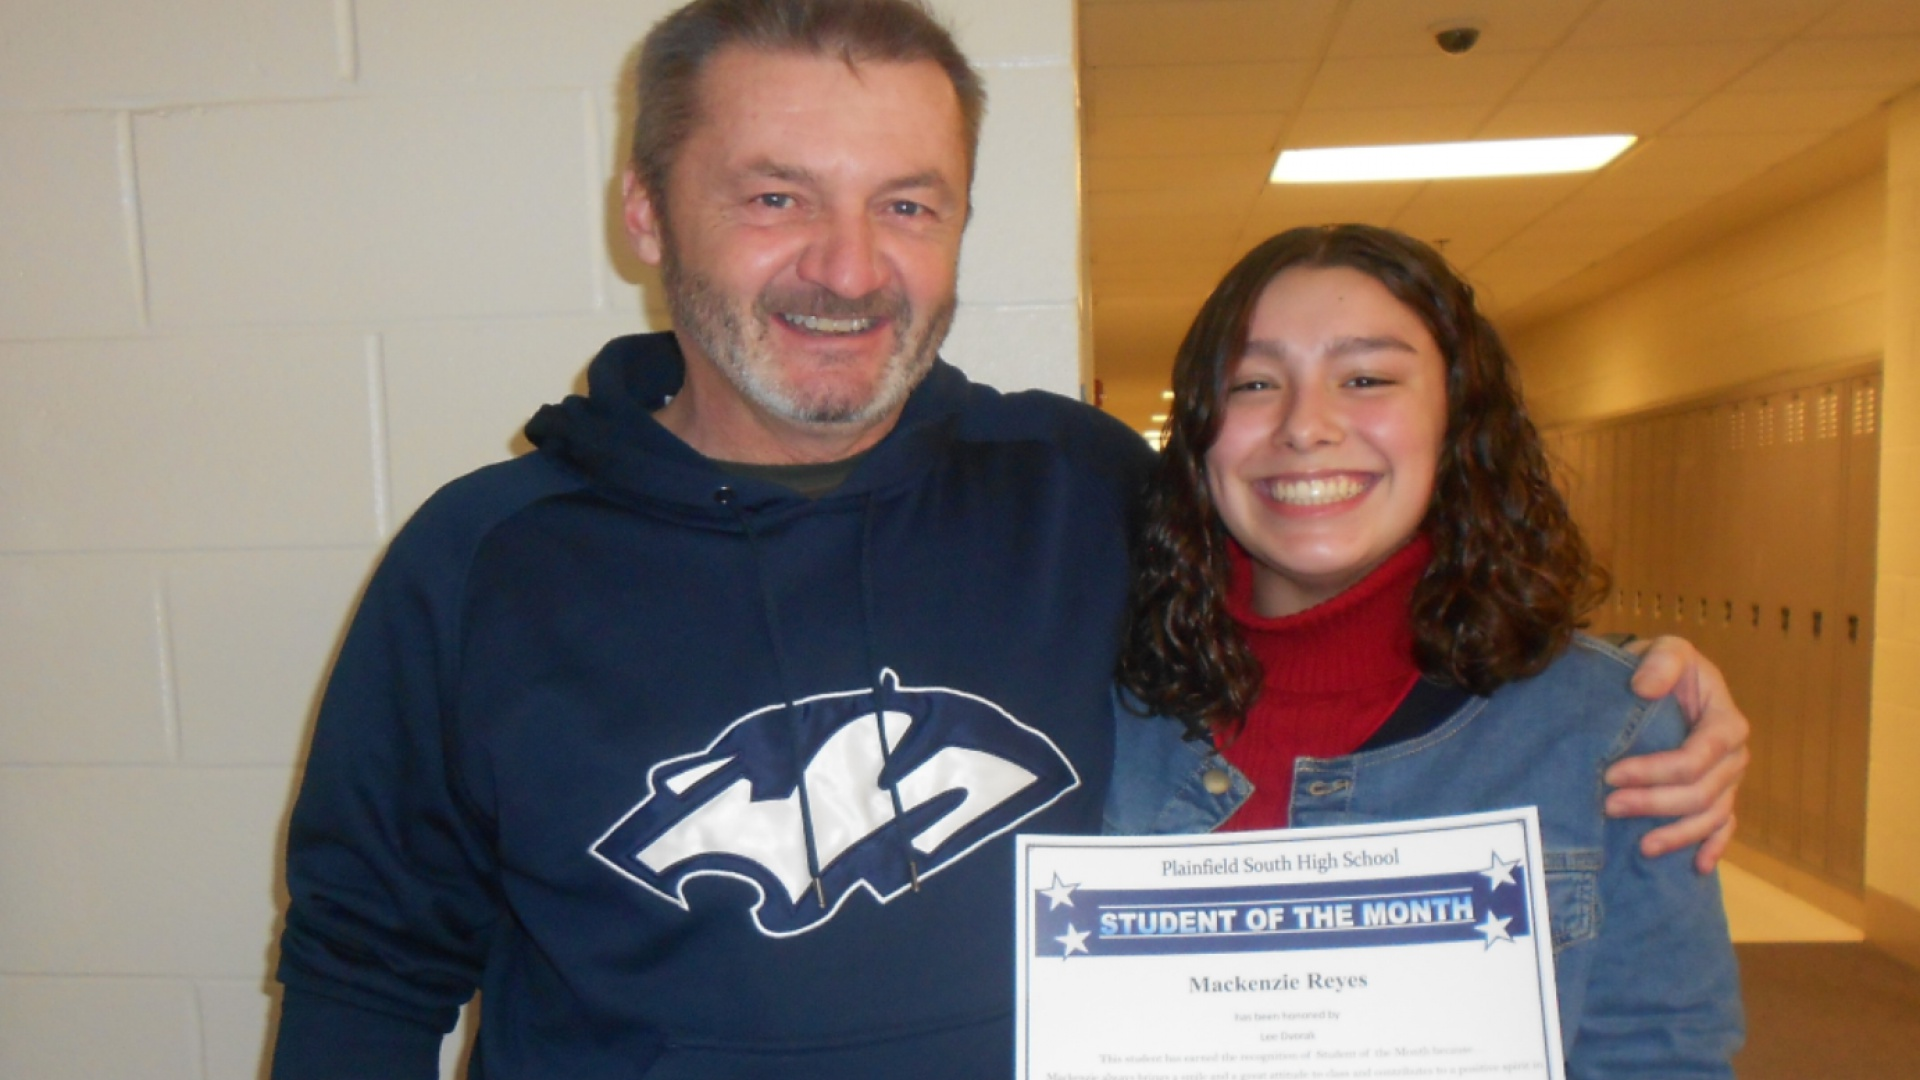 Student of the Month Mackenzie Reyes